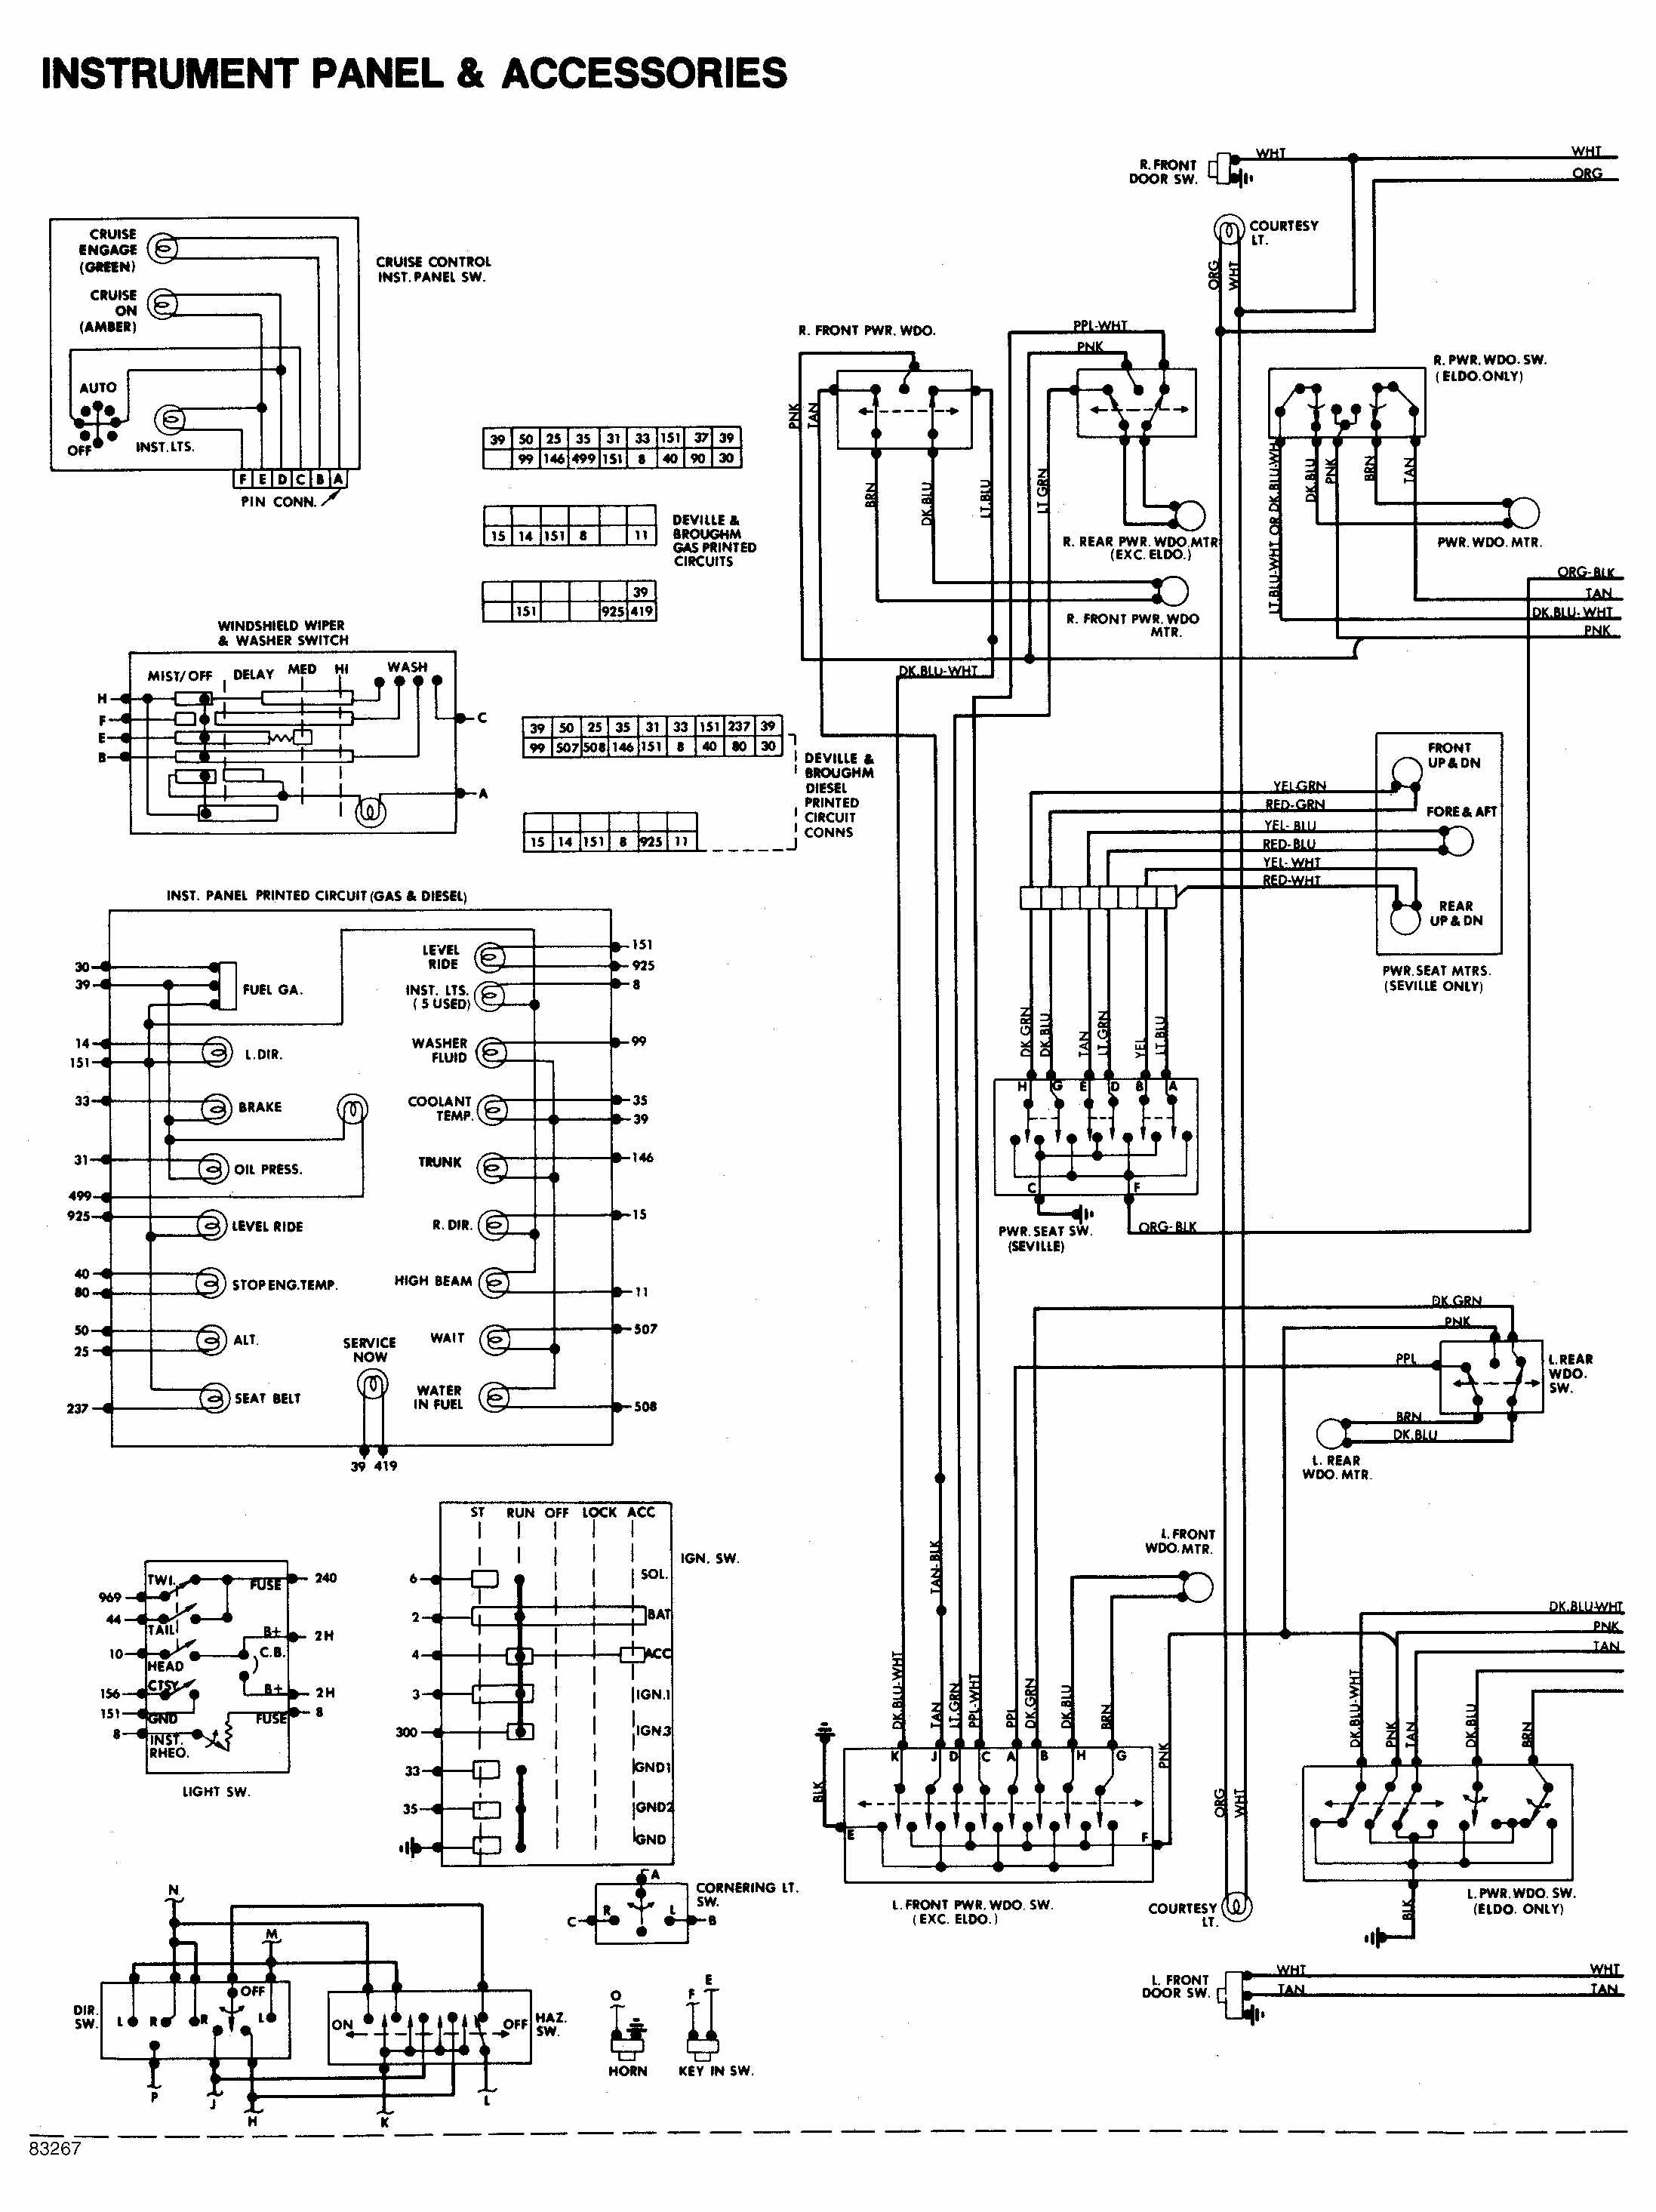 Chevy Diagrams Chevrolet Wiring 1984 Cadillac Deville Instrument Panel And Accessories Diagram Drawing A